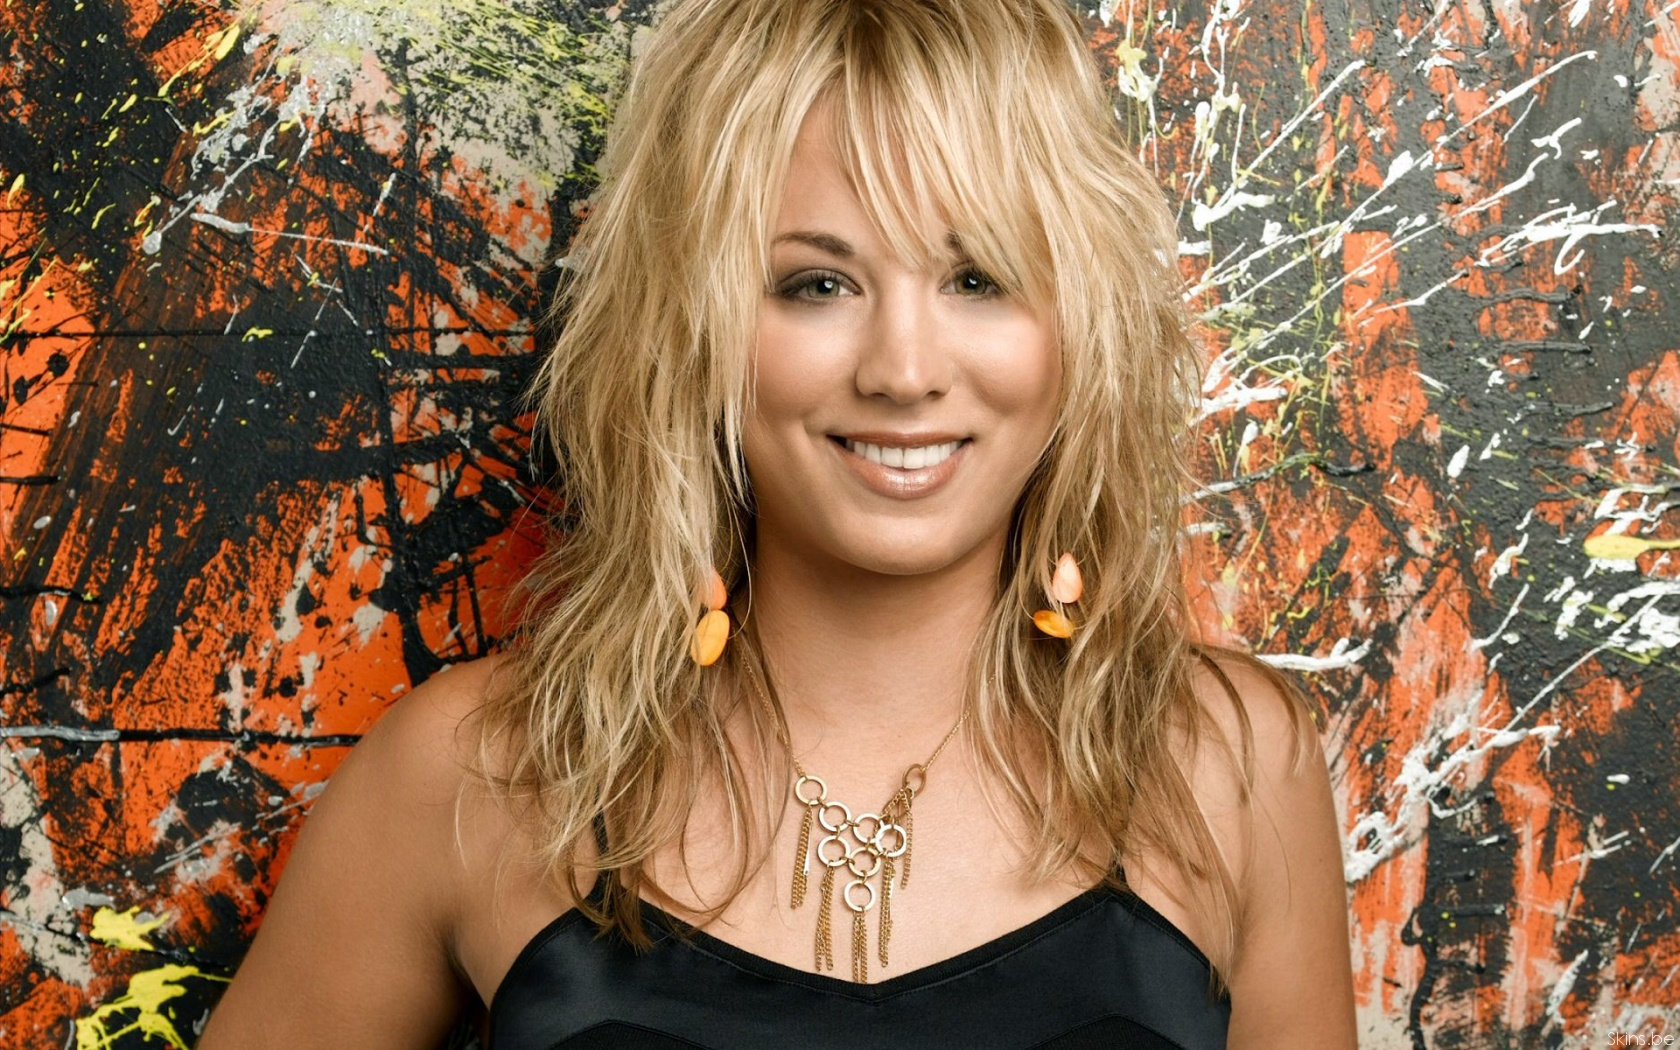 Kaley Cuoco desktop wallpaper download in widescreen 1680x1050